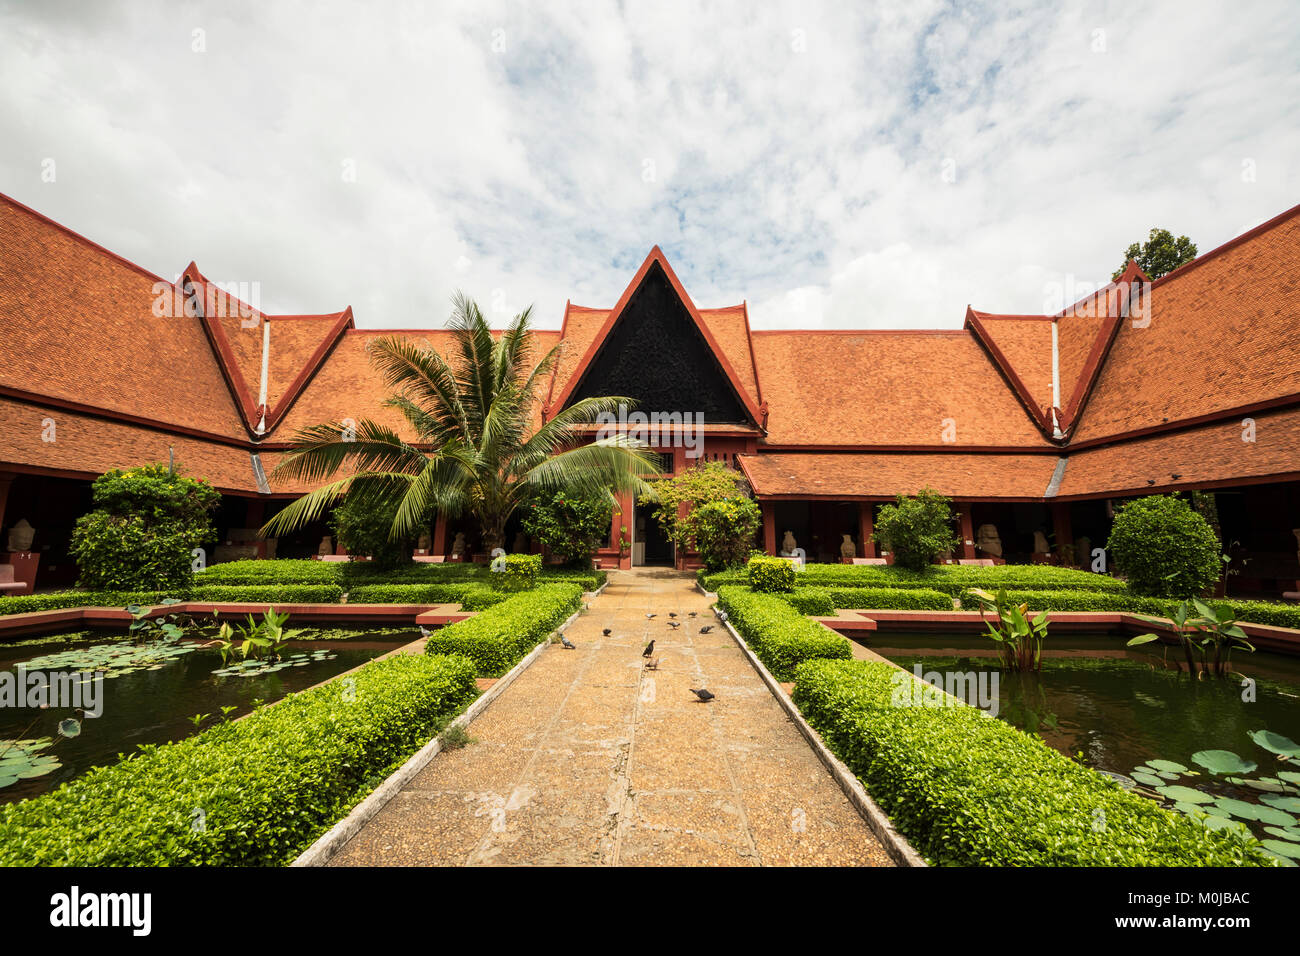 Courtyard in the National Museum of Arts; Phnom Penh, Cambodia - Stock Image